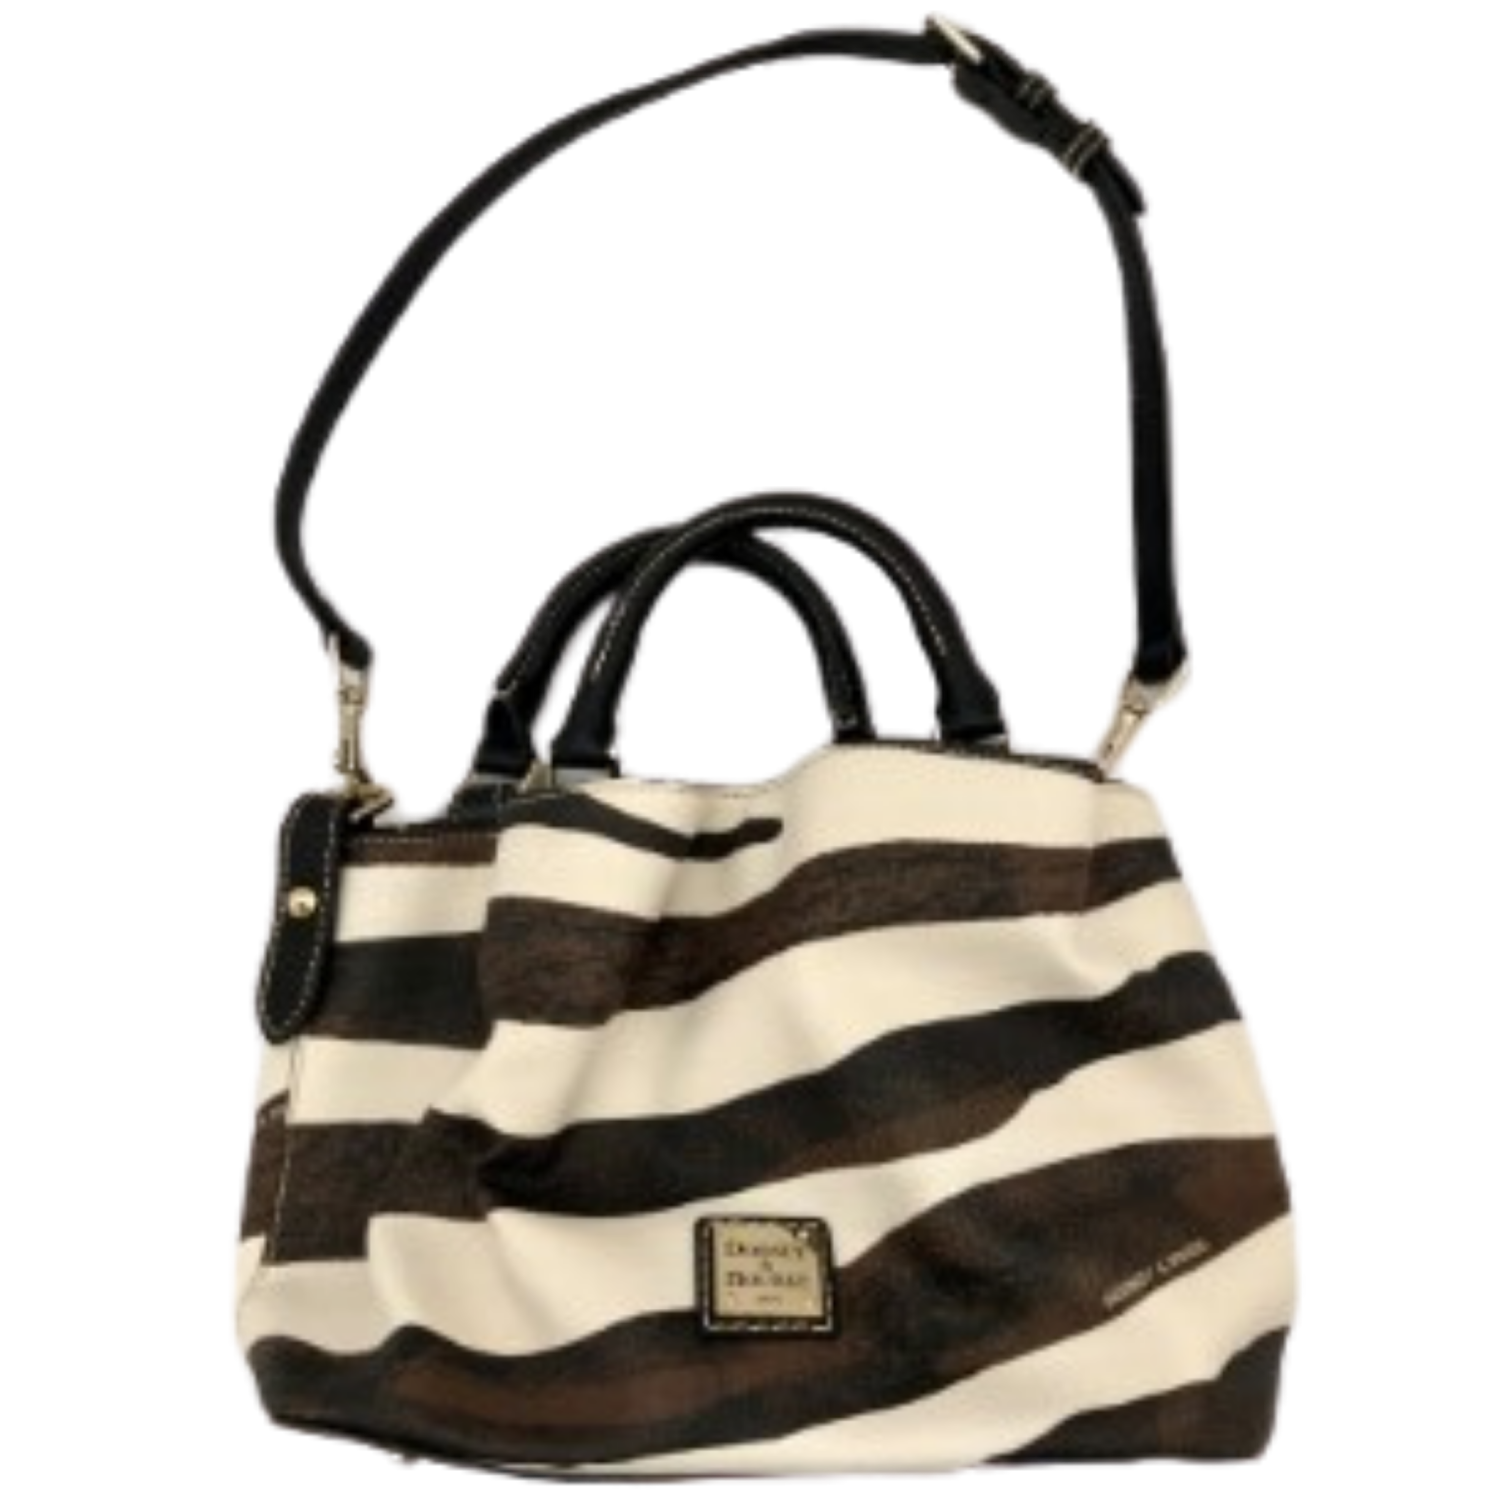 Zebra Patterned Dooney & Bourke Handbag